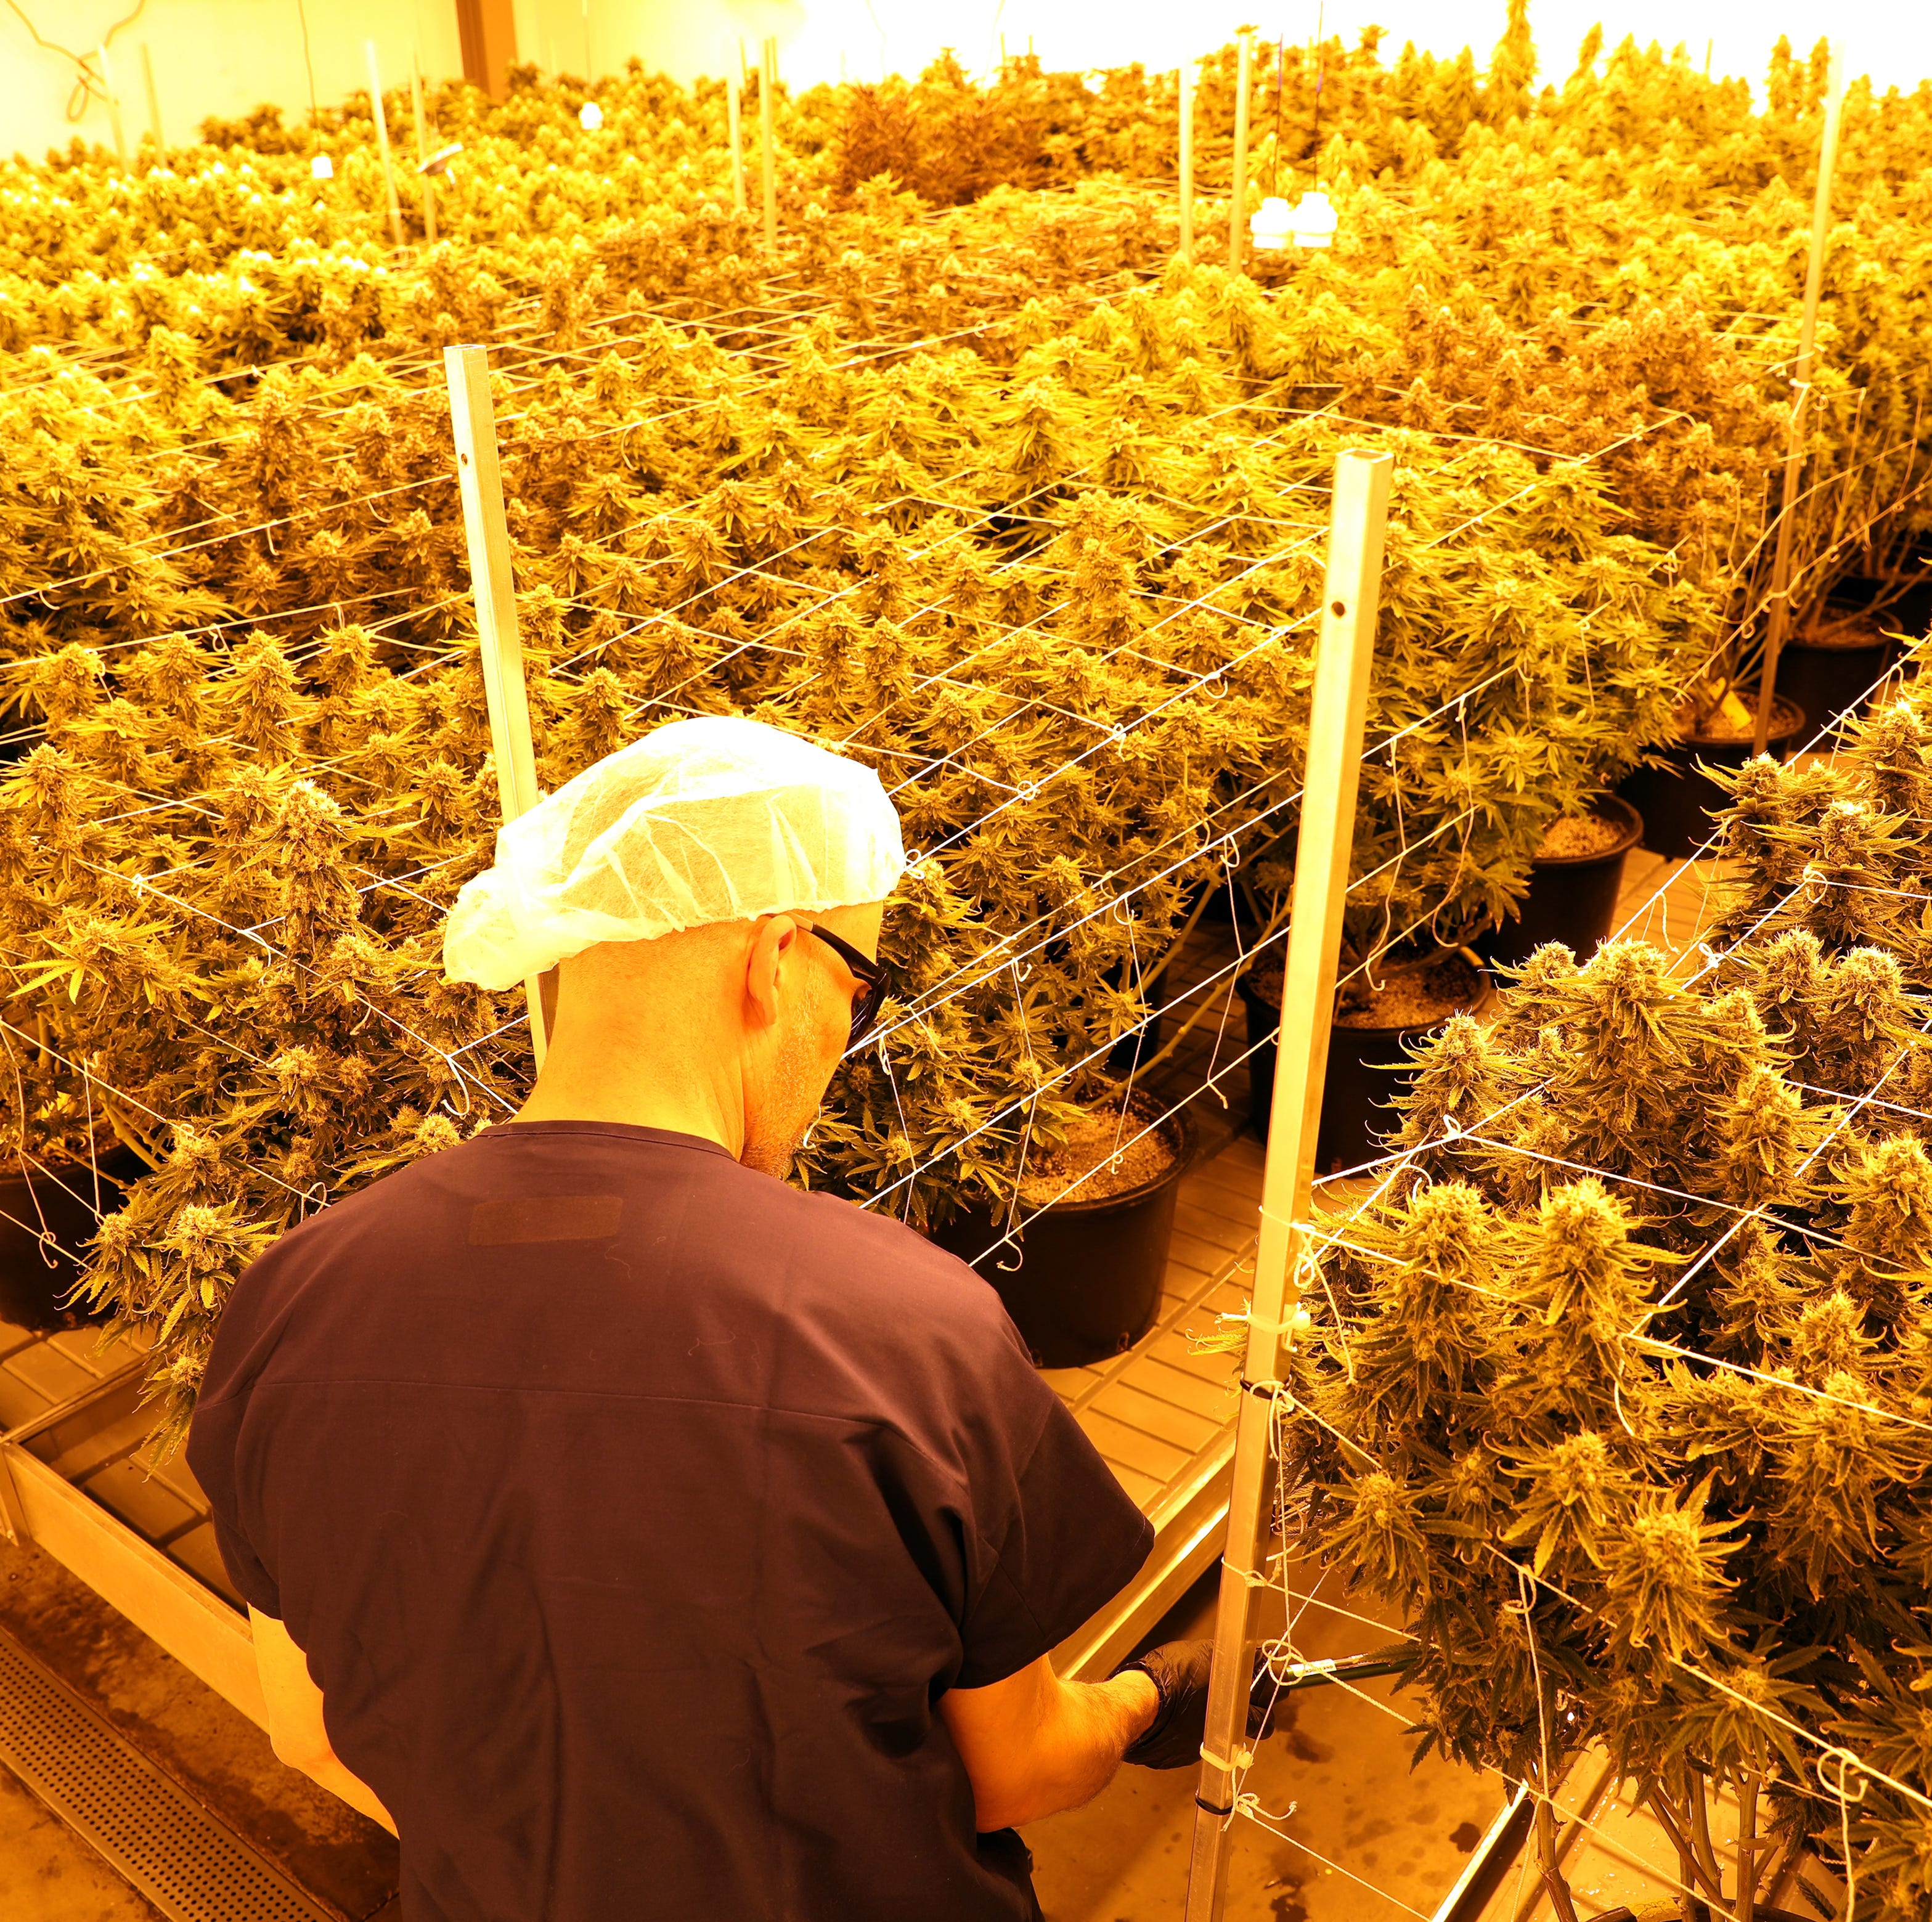 Grow Ohio products about to hit the market